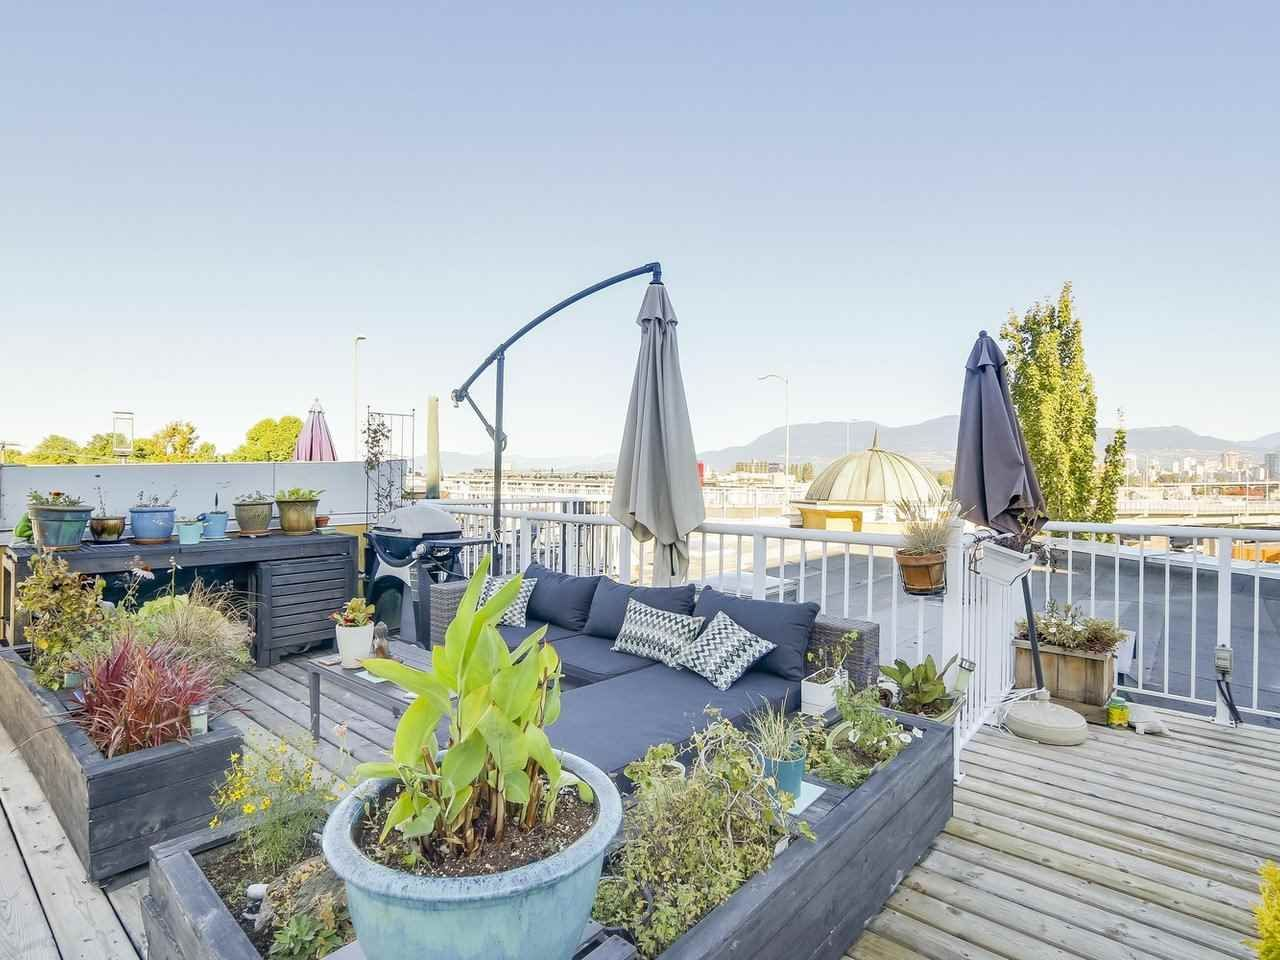 """Main Photo: 404 1562 W 5TH Avenue in Vancouver: False Creek Condo for sale in """"GRYPHON COURT"""" (Vancouver West)  : MLS®# R2211506"""